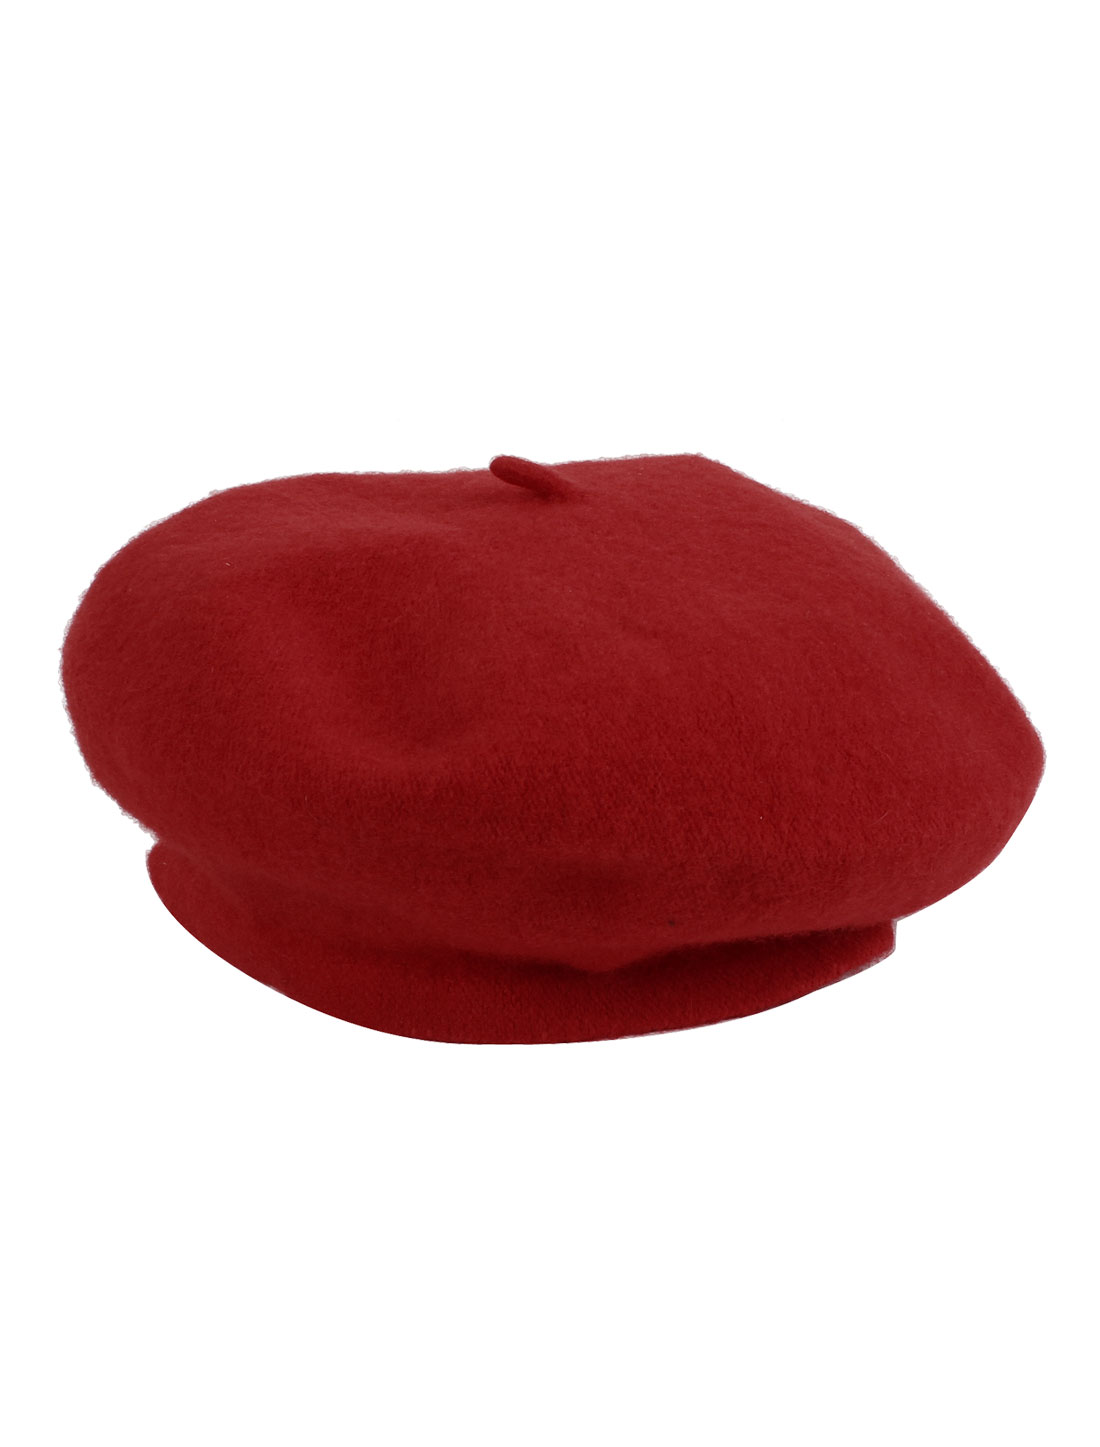 Red Knitting Winter Warmer Acrylic Beret Beanie Hat Cap for Lady